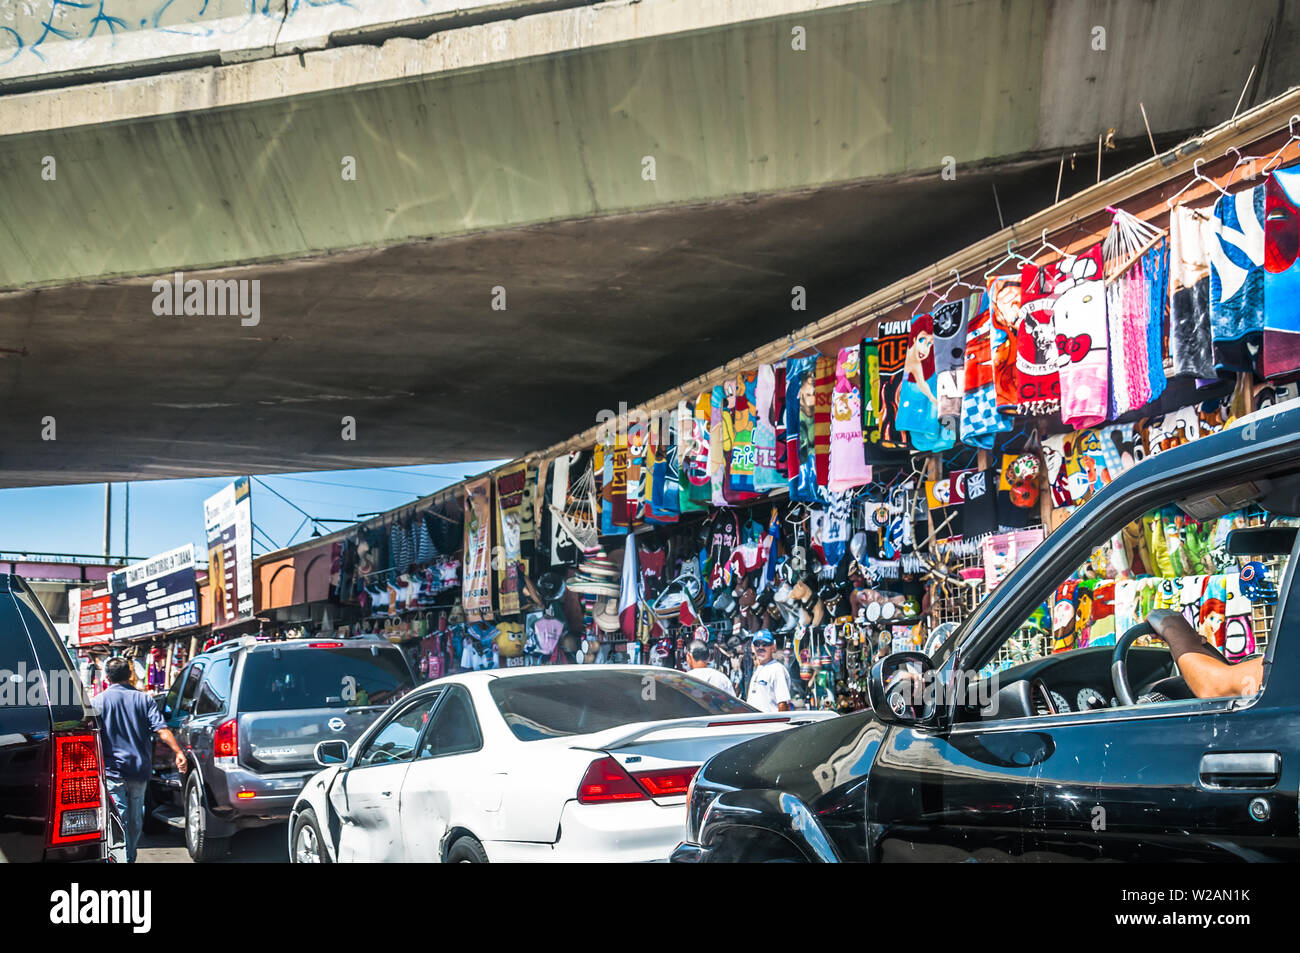 Tijuana, Mexico - AUGUST 2, 2012 - Commerce/Martket of Streets of Border of the United States and Mexico in San Diego, California - Stock Image